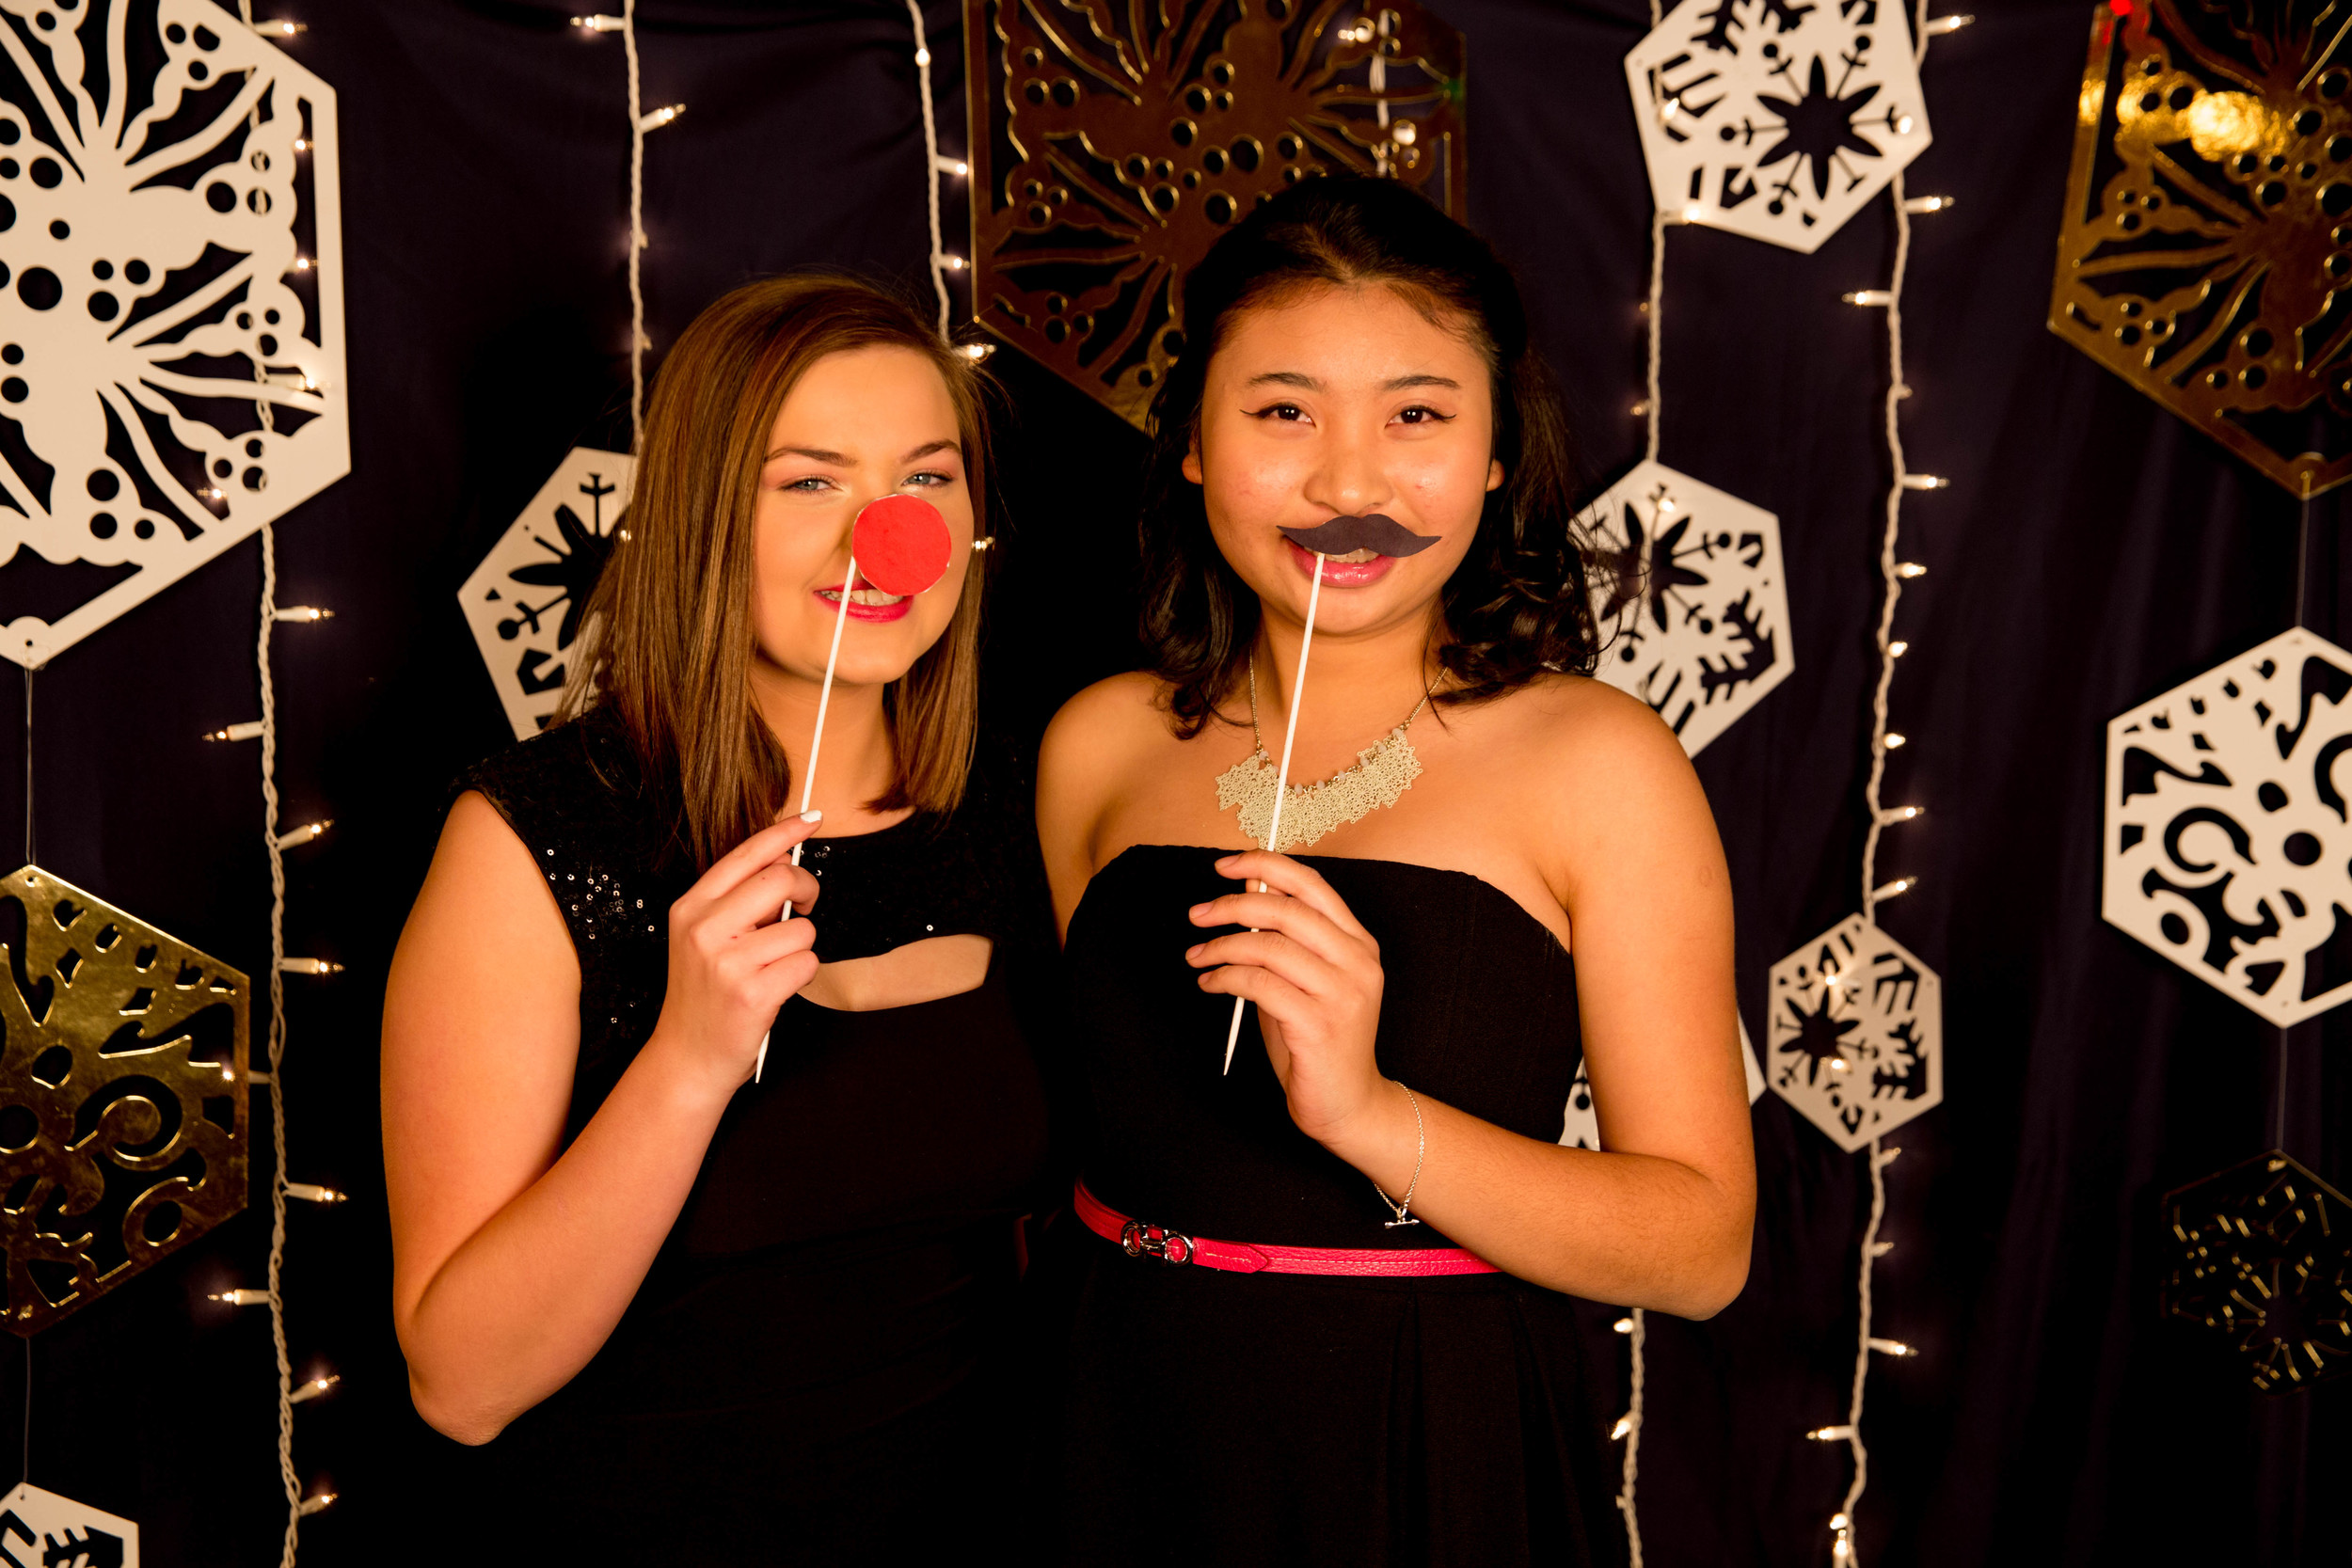 Nhi Nguyen and Ashley Jarvi pose at Hillcrest's Christmas banquet photobooth